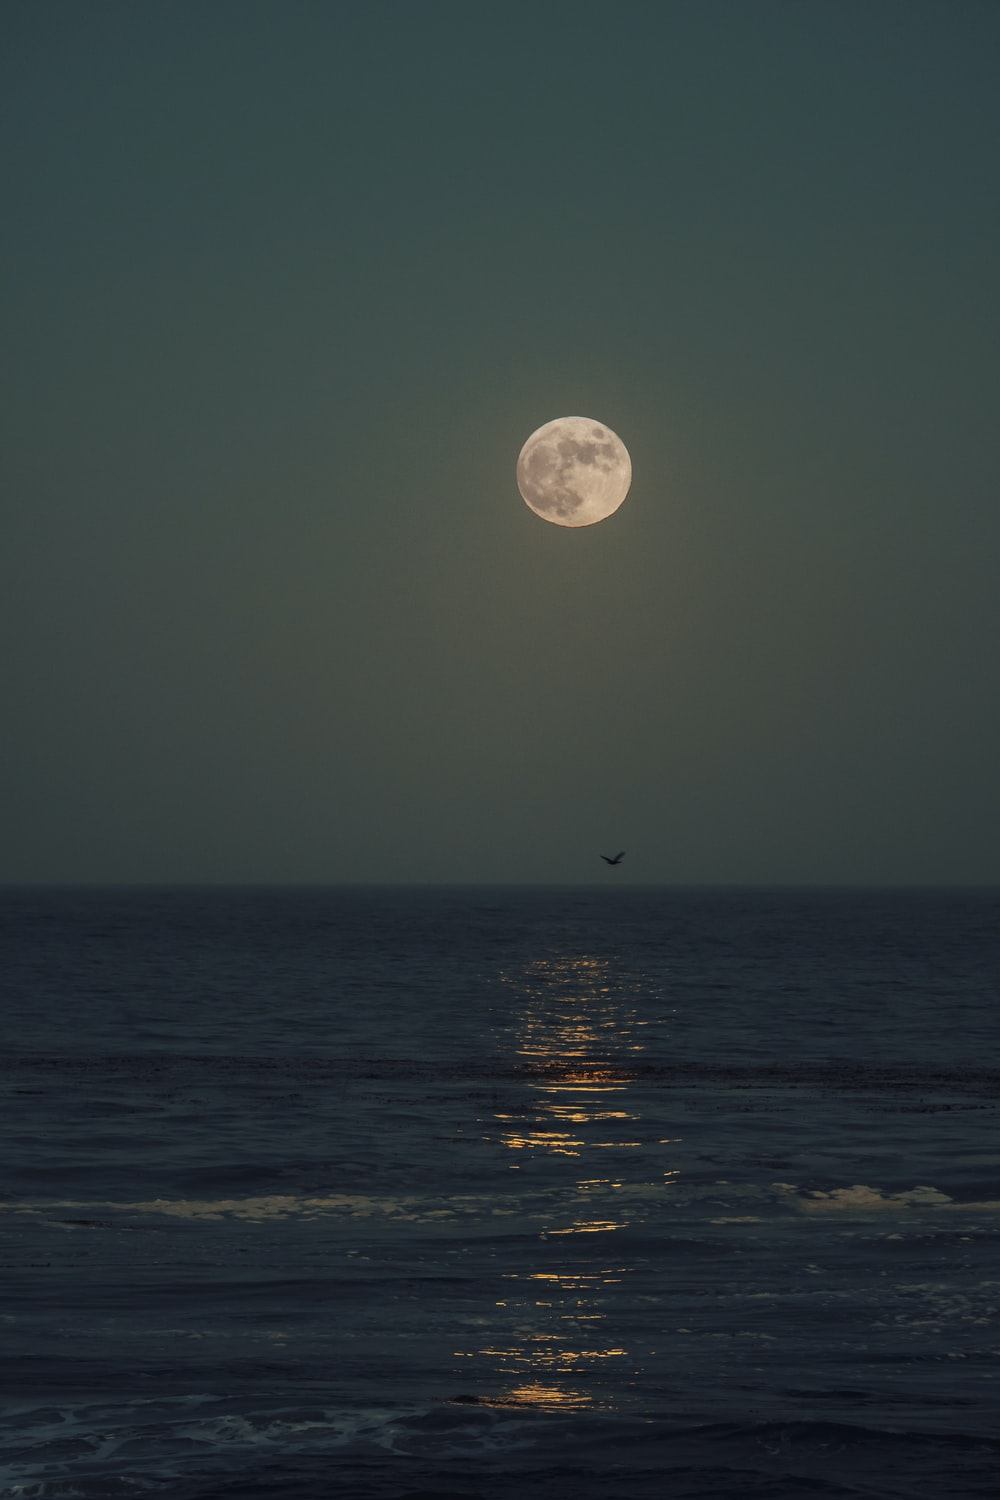 Moon Sea Pictures Download Free Images On Unsplash Wallpaper sunset moon sea rocks waves